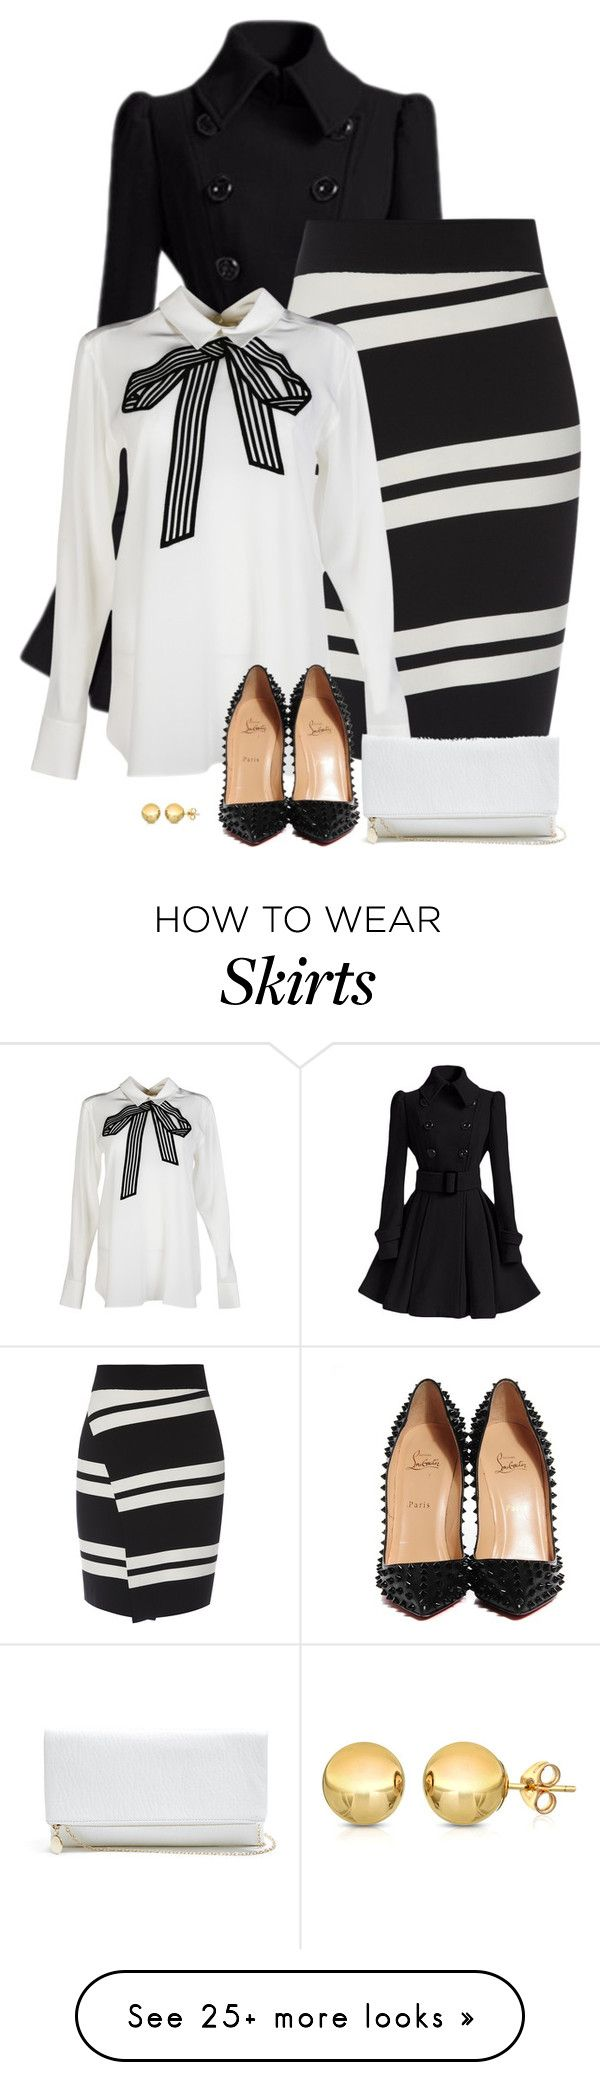 """it's snowing!"" by divacrafts on Polyvore featuring STELLA McCARTNEY, Christian Louboutin, GUESS, Sevil Designs and Original"